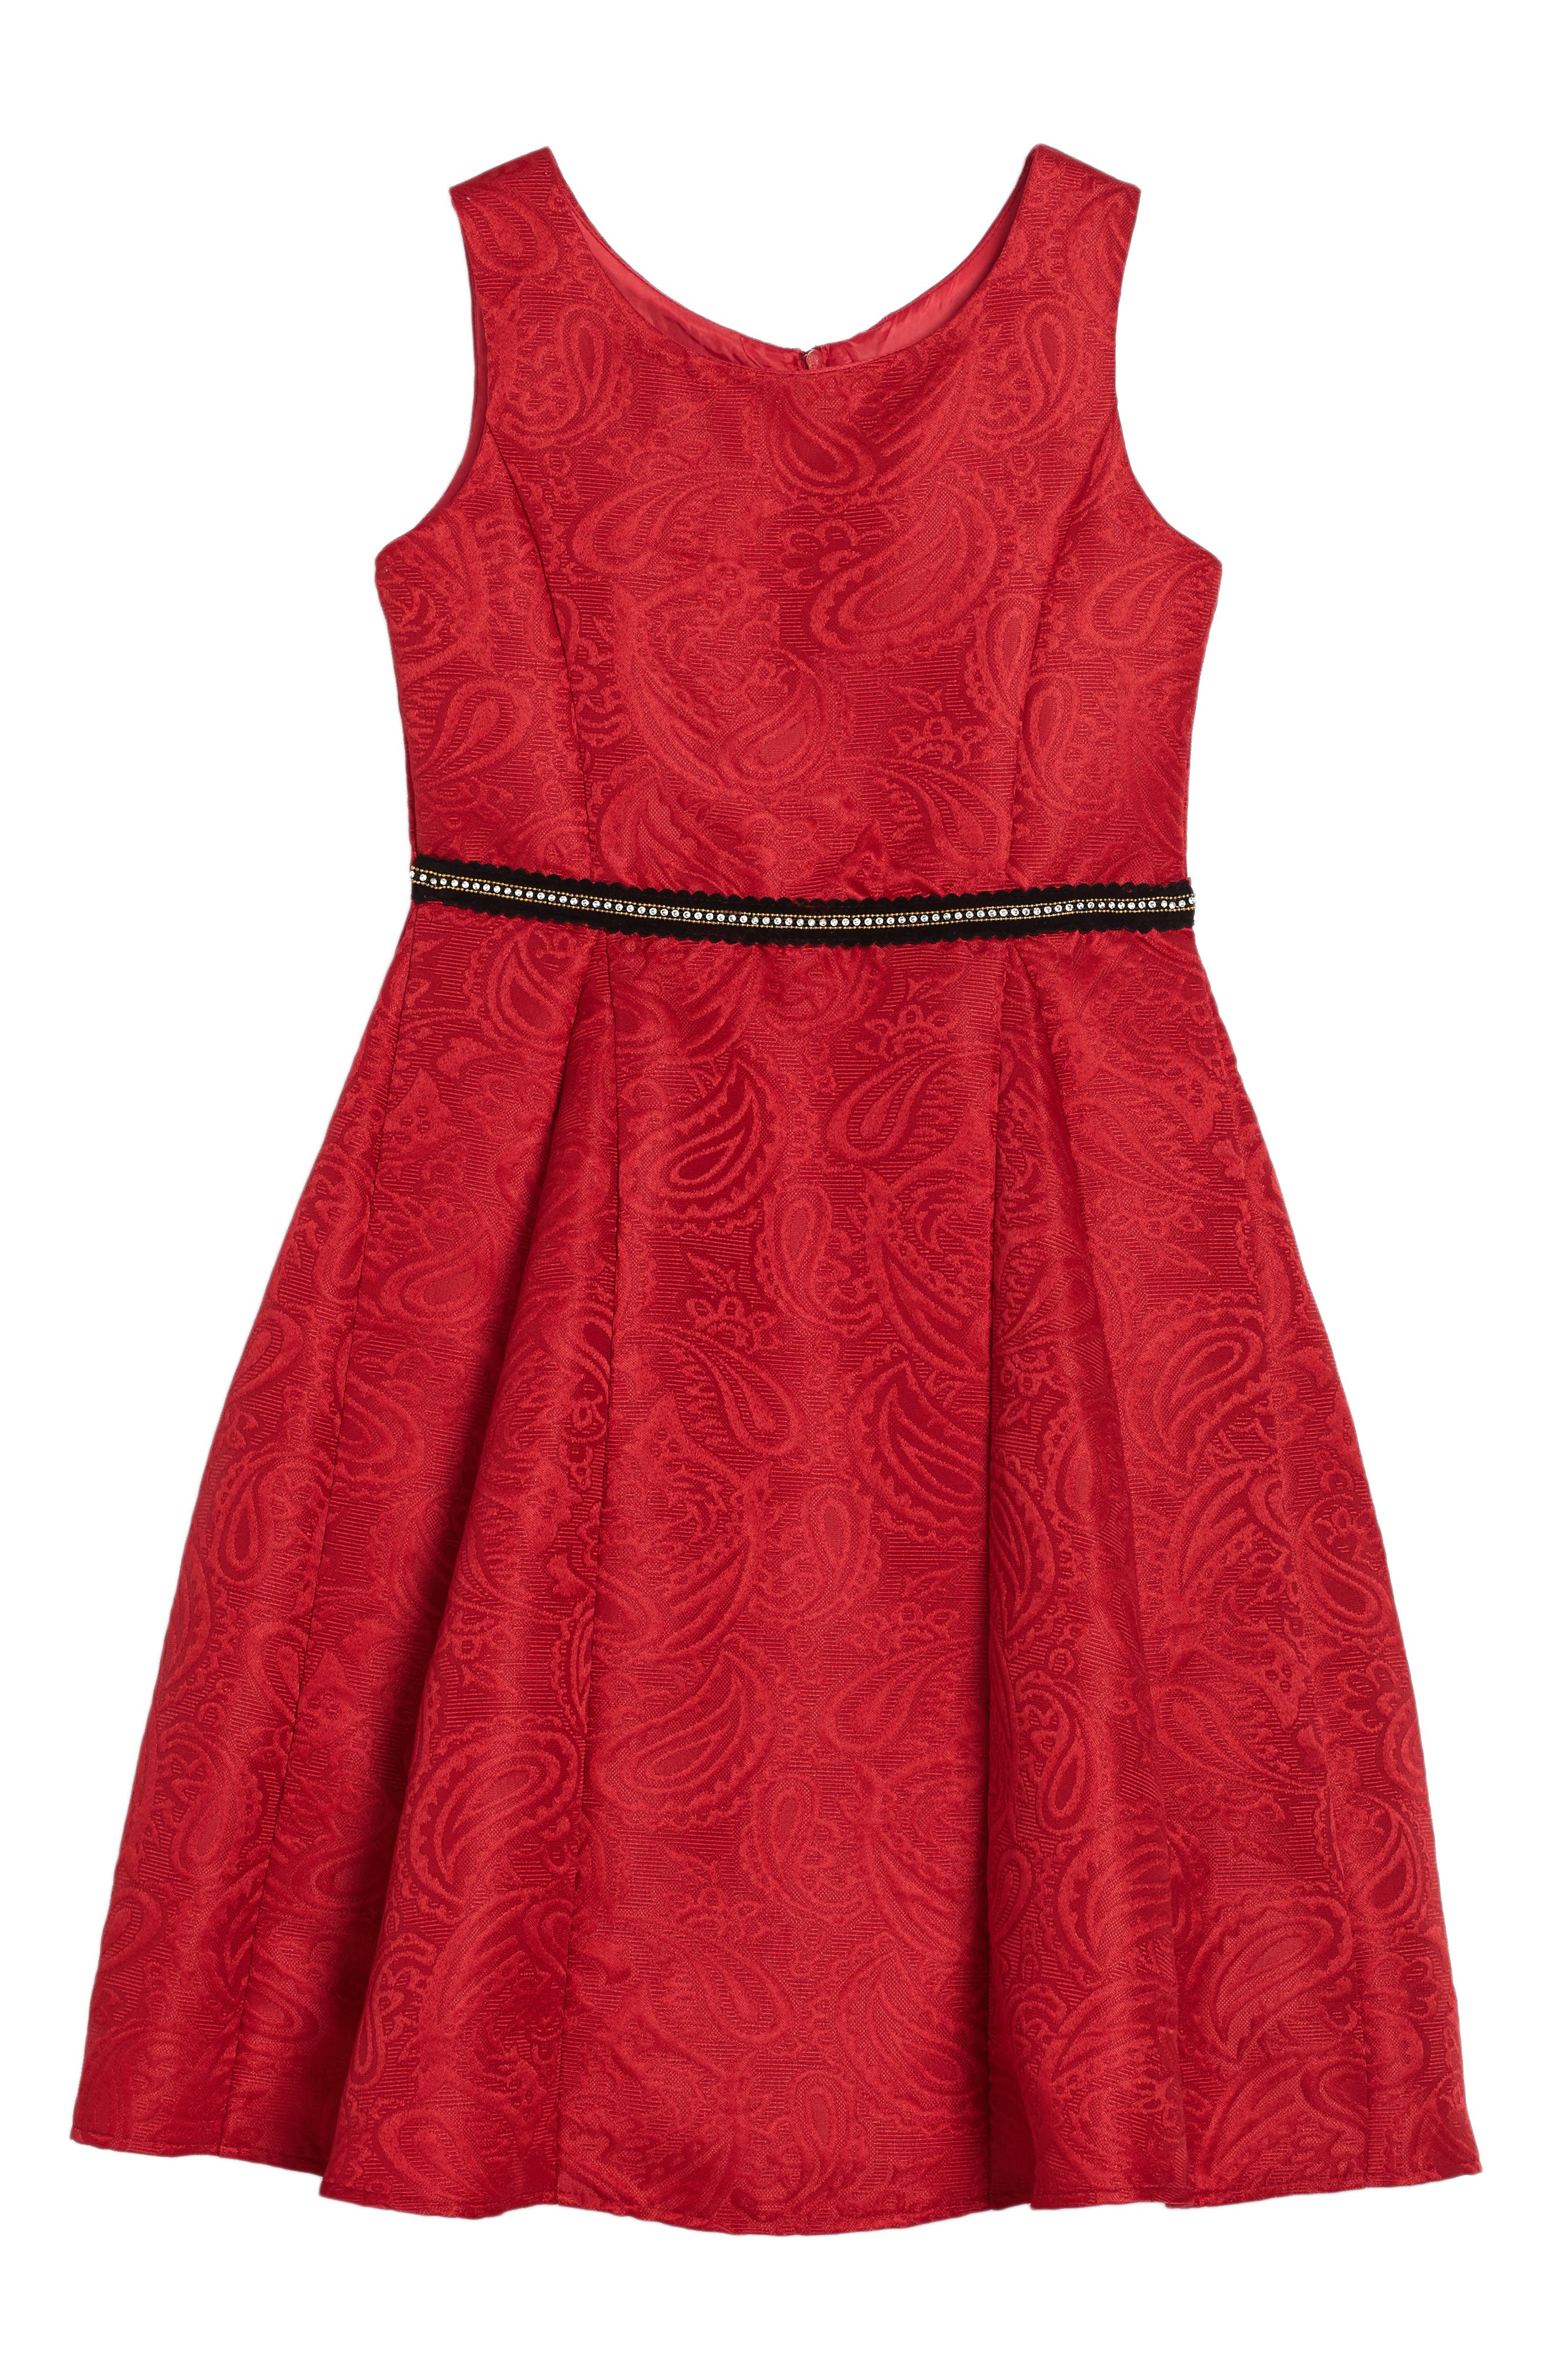 Dorissa Hannah Jacquard Dress (Toddler Girls, Little Girls & Big Girls)